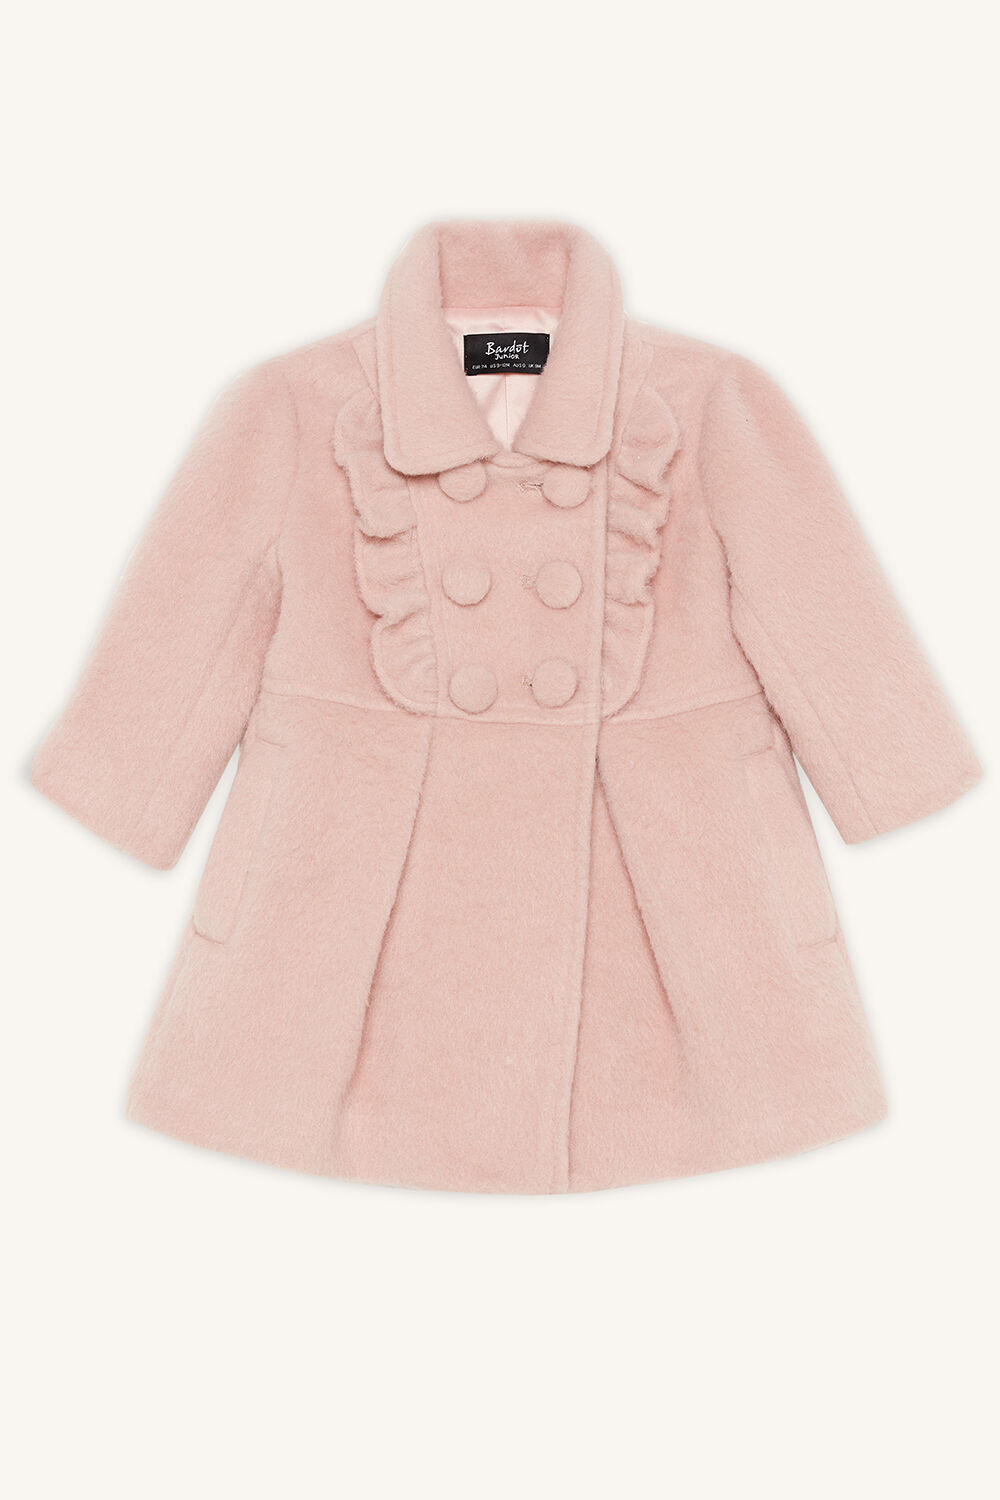 MAY FRILL PEA COAT in colour SHELL